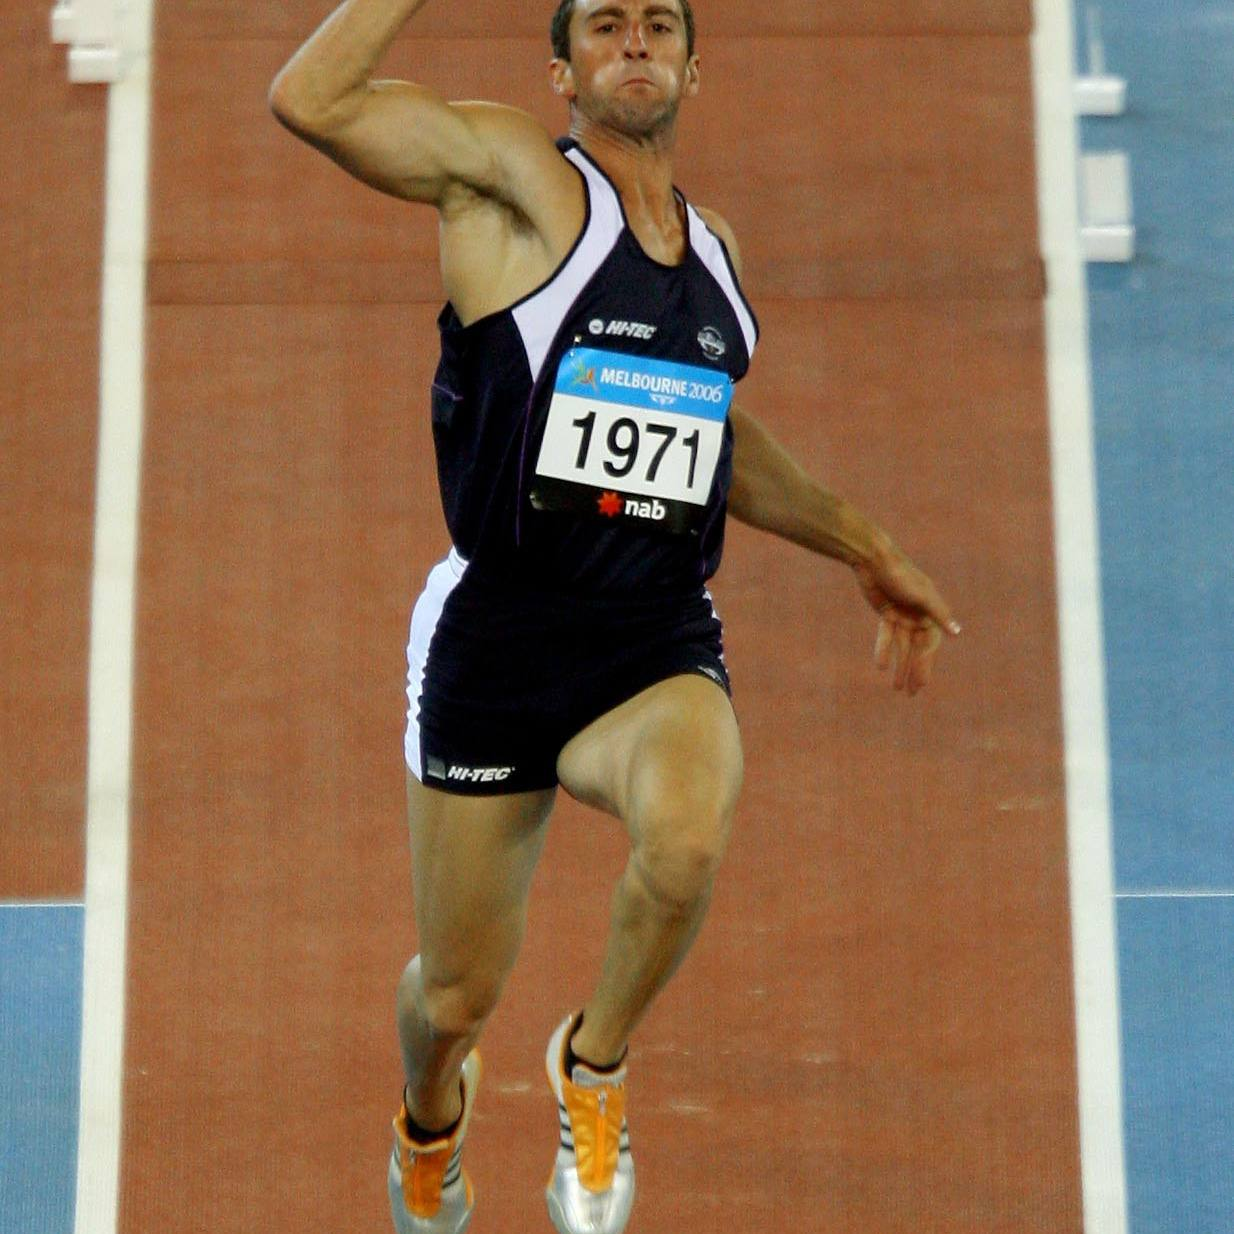 Darren Ritchie of Scotland competes during the men's Long Jump final